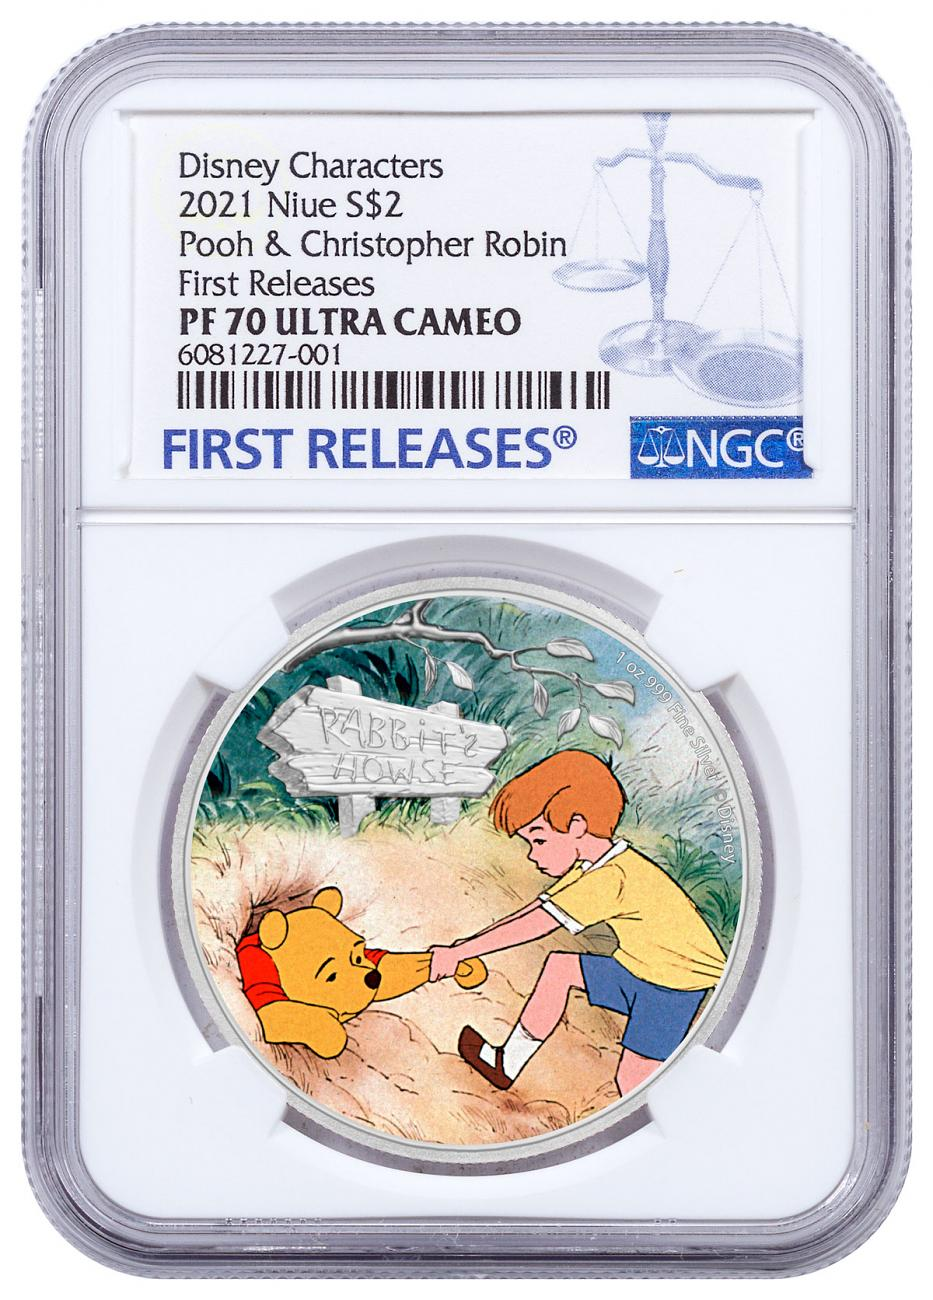 2021 Niue Disney Characters - Winnie the Pooh & Christopher Robin 1 oz Silver Colorized $2 Proof Coin NGC PF70 UC FR